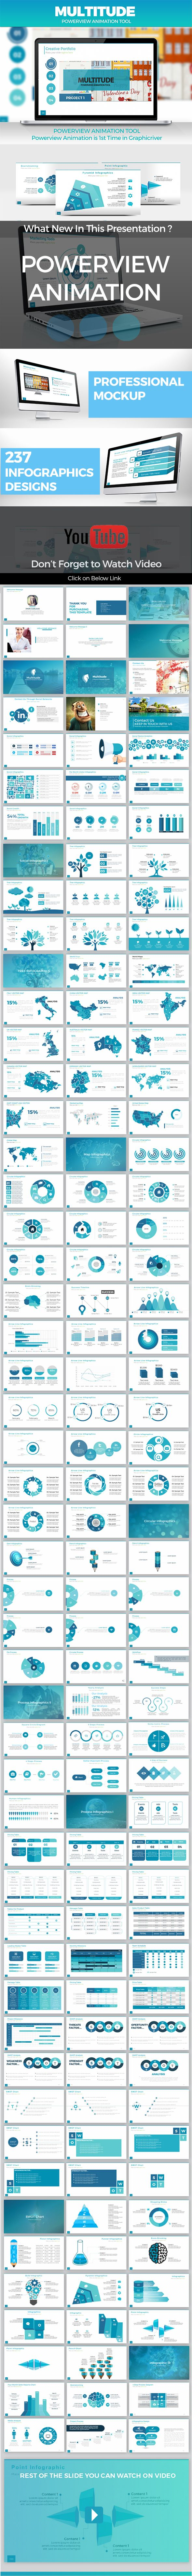 Multitude multipurose powerpoint template with powerview animation multitude multipurose powerpoint template with powerview animation powerpoint templates presentation templates toneelgroepblik Images